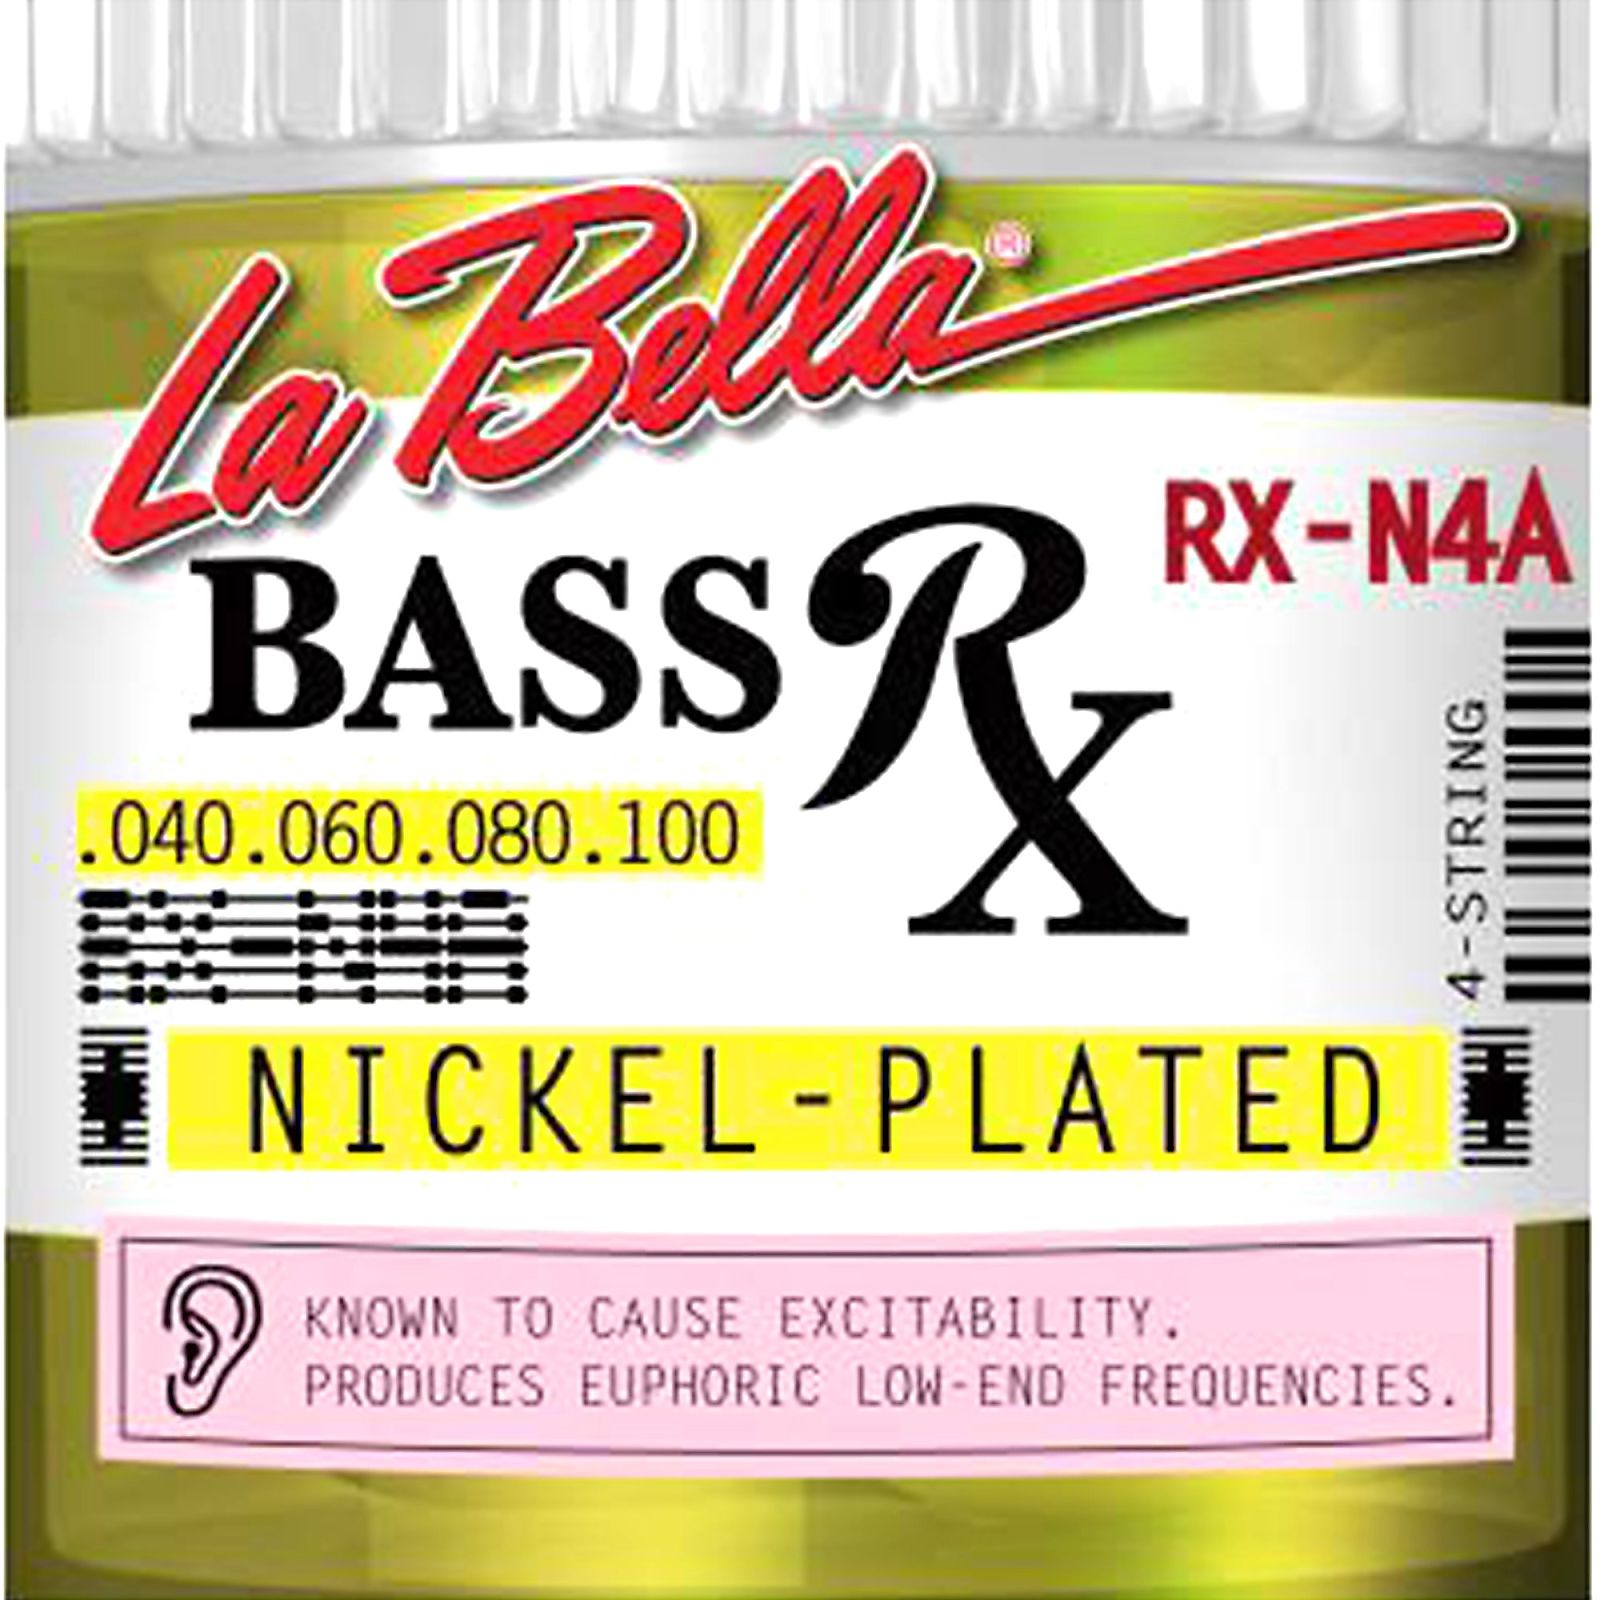 La Bella Bass Strings Rx Nickel Plated 4-String RX-N4A .040-.100